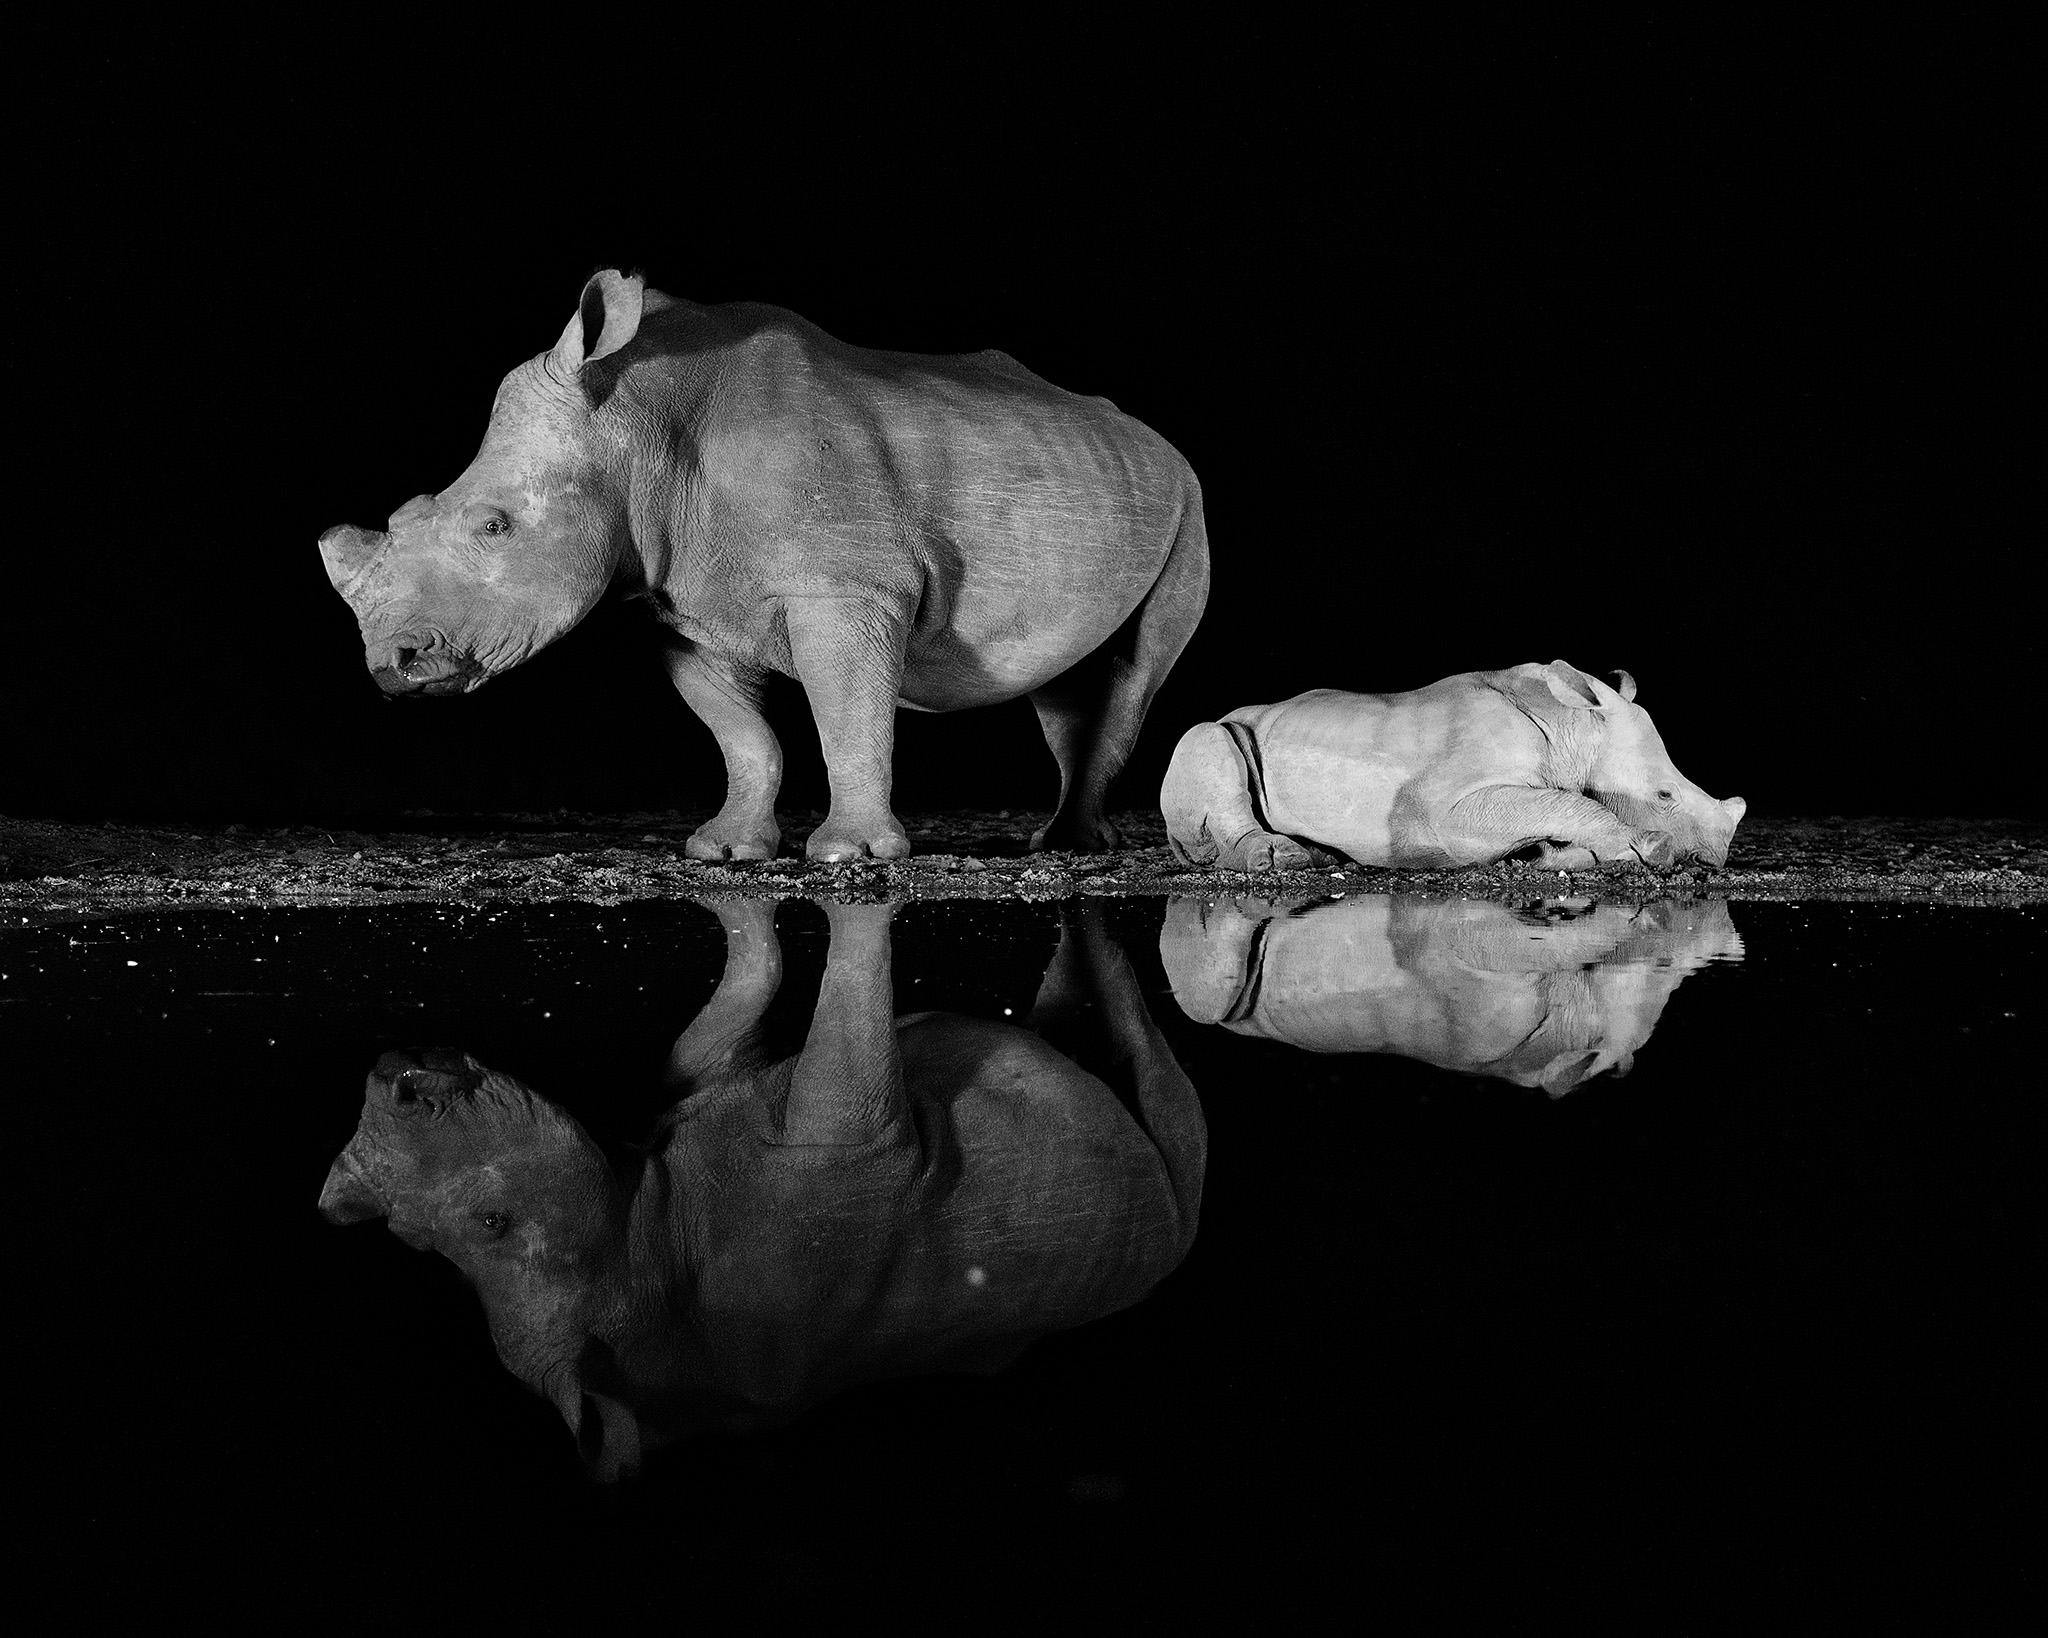 A rhino and her calf